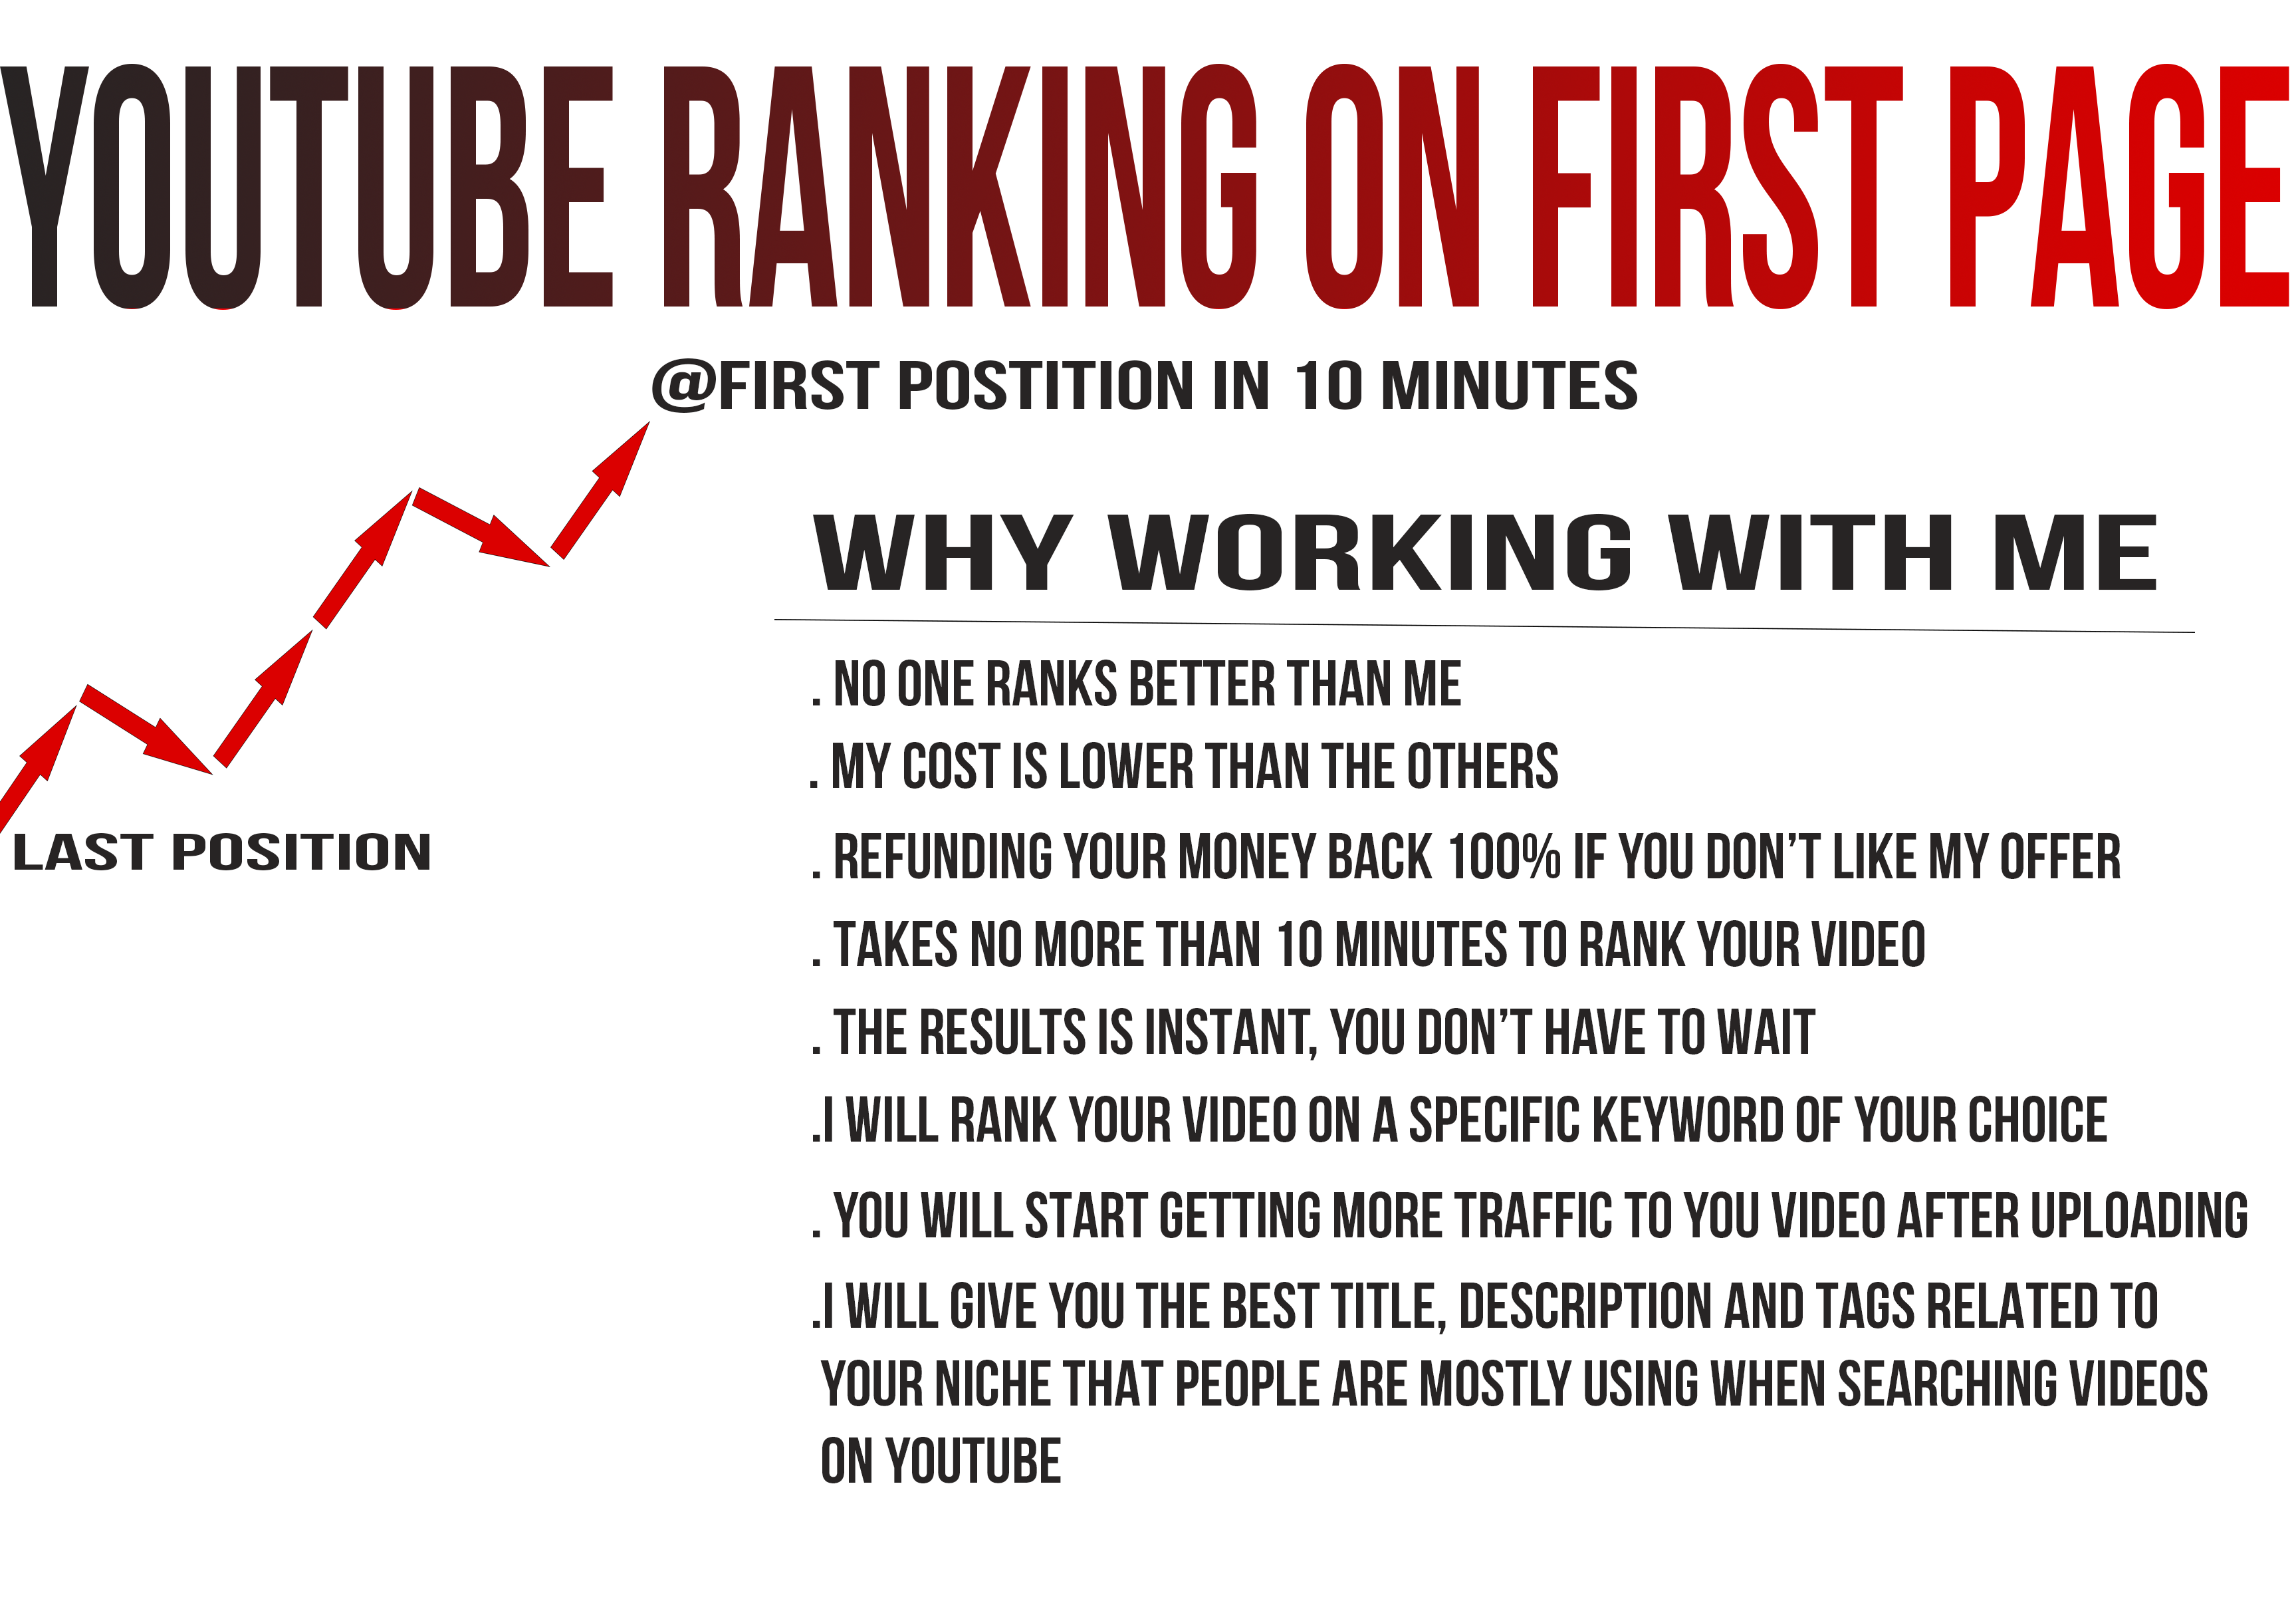 youtube video promotion/ YT rank on first page of yt get more watchings organically